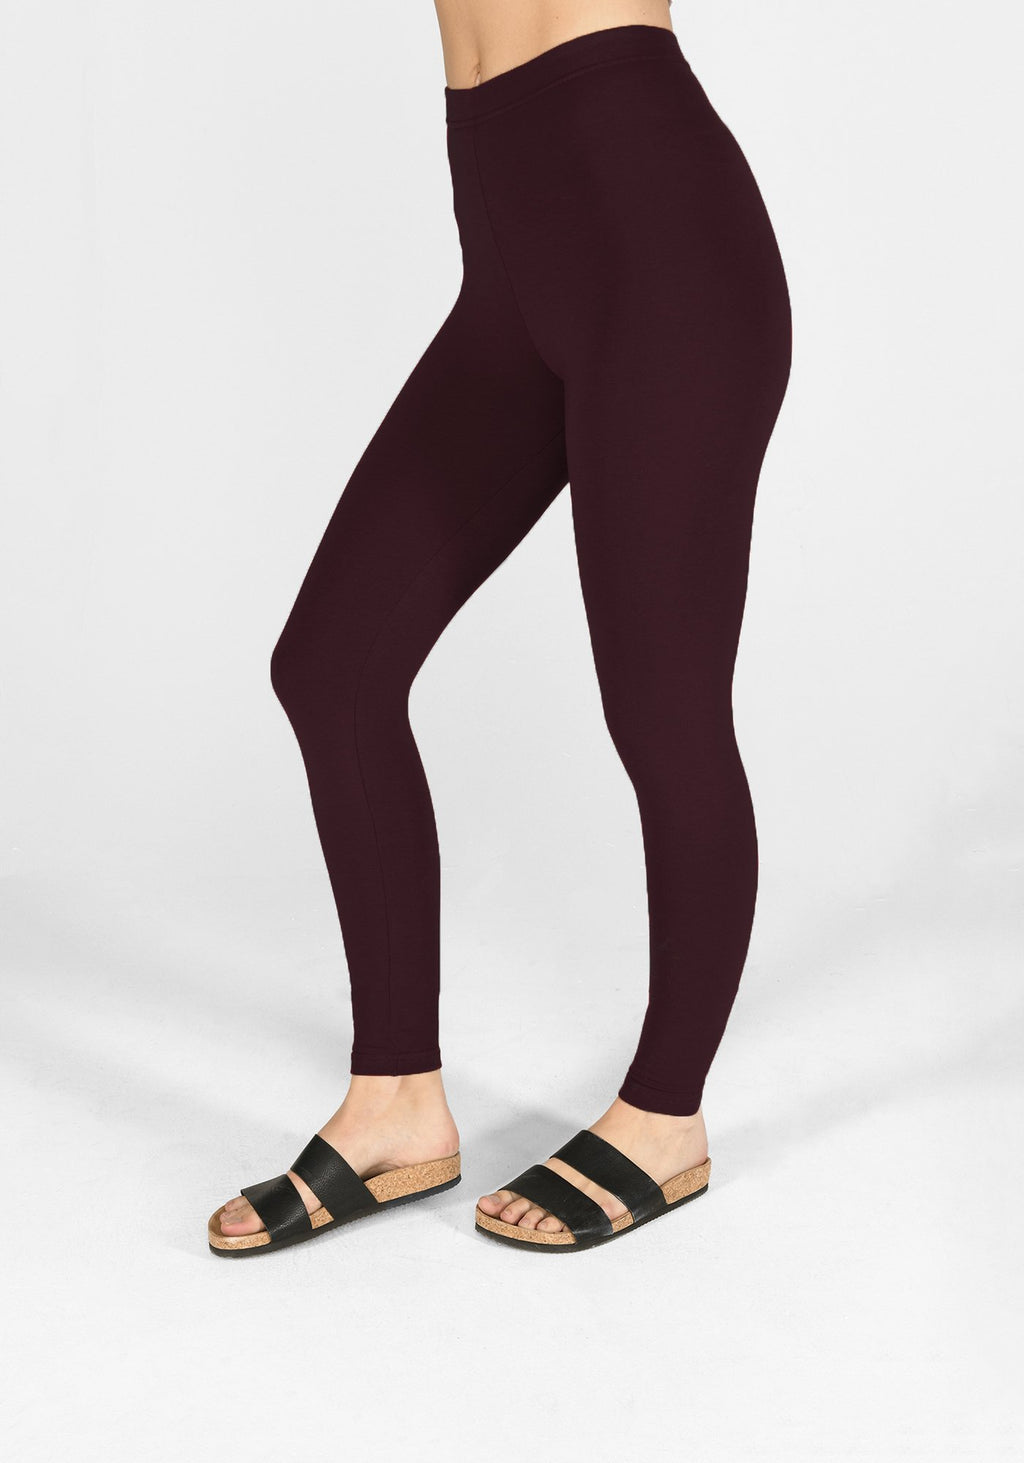 Classic Burgundy Leggings